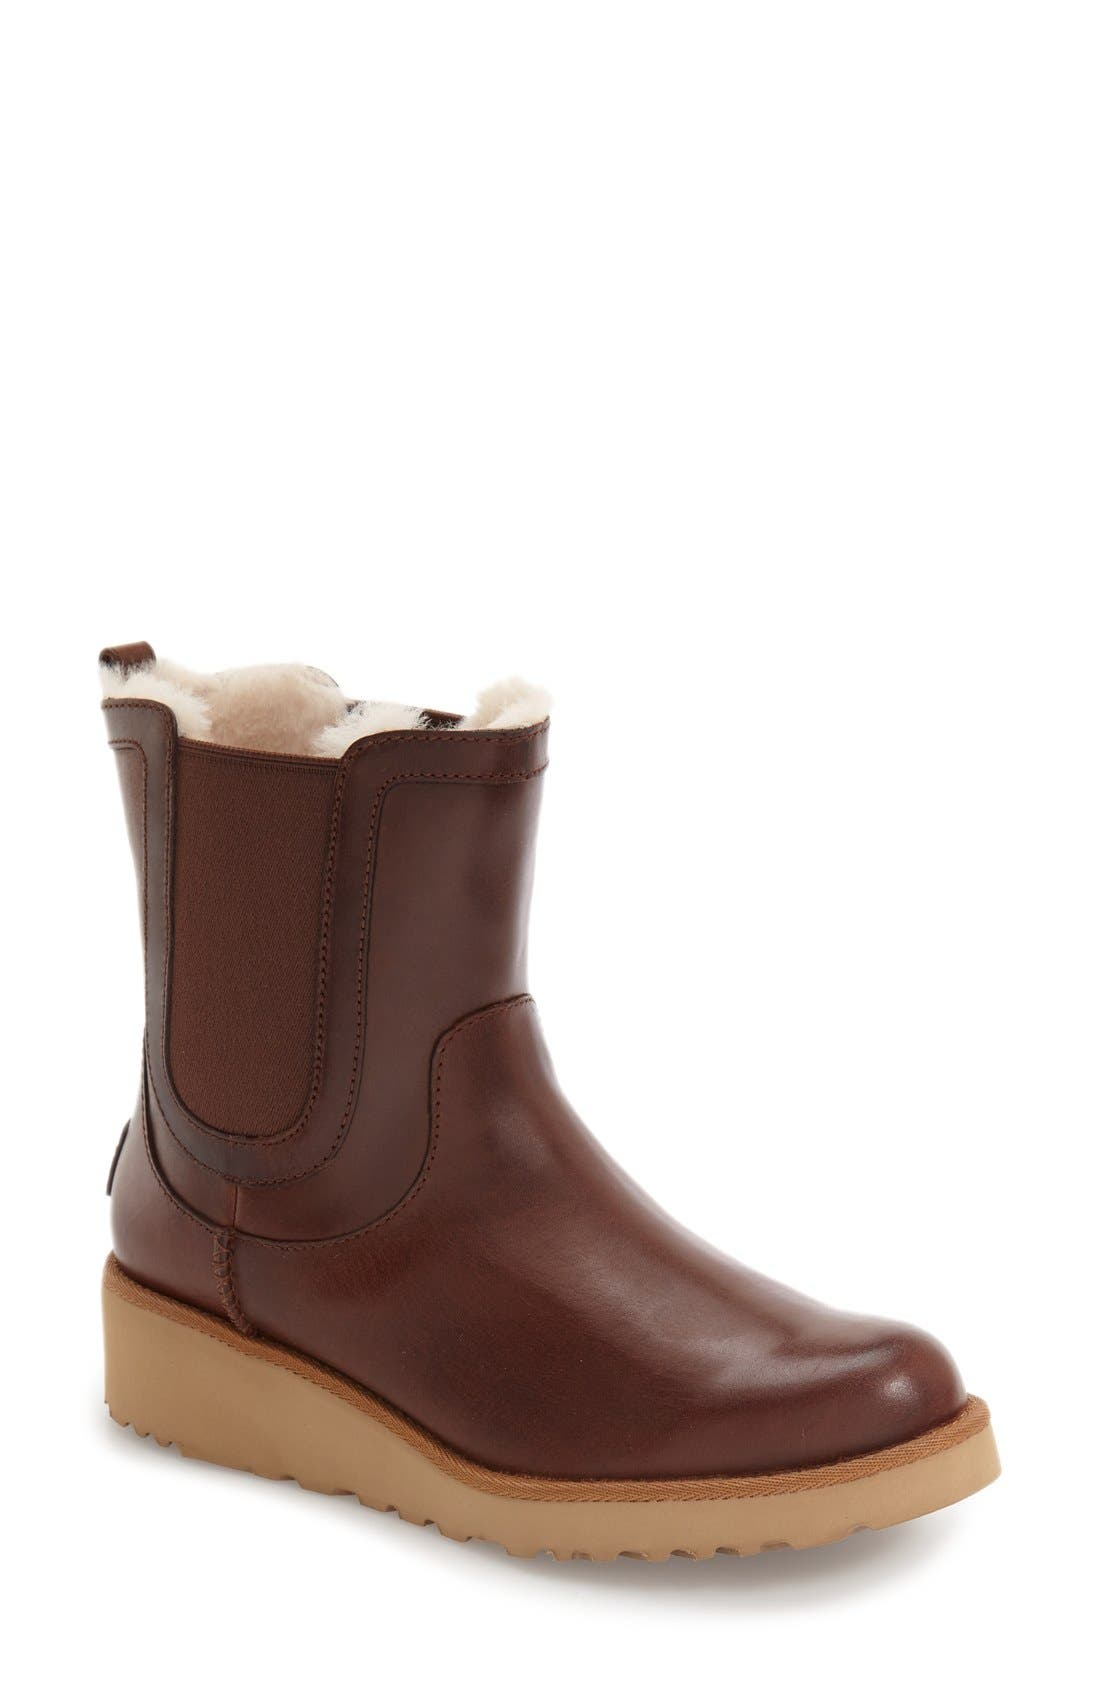 Main Image - UGG® Britt Winter Boot (Women)